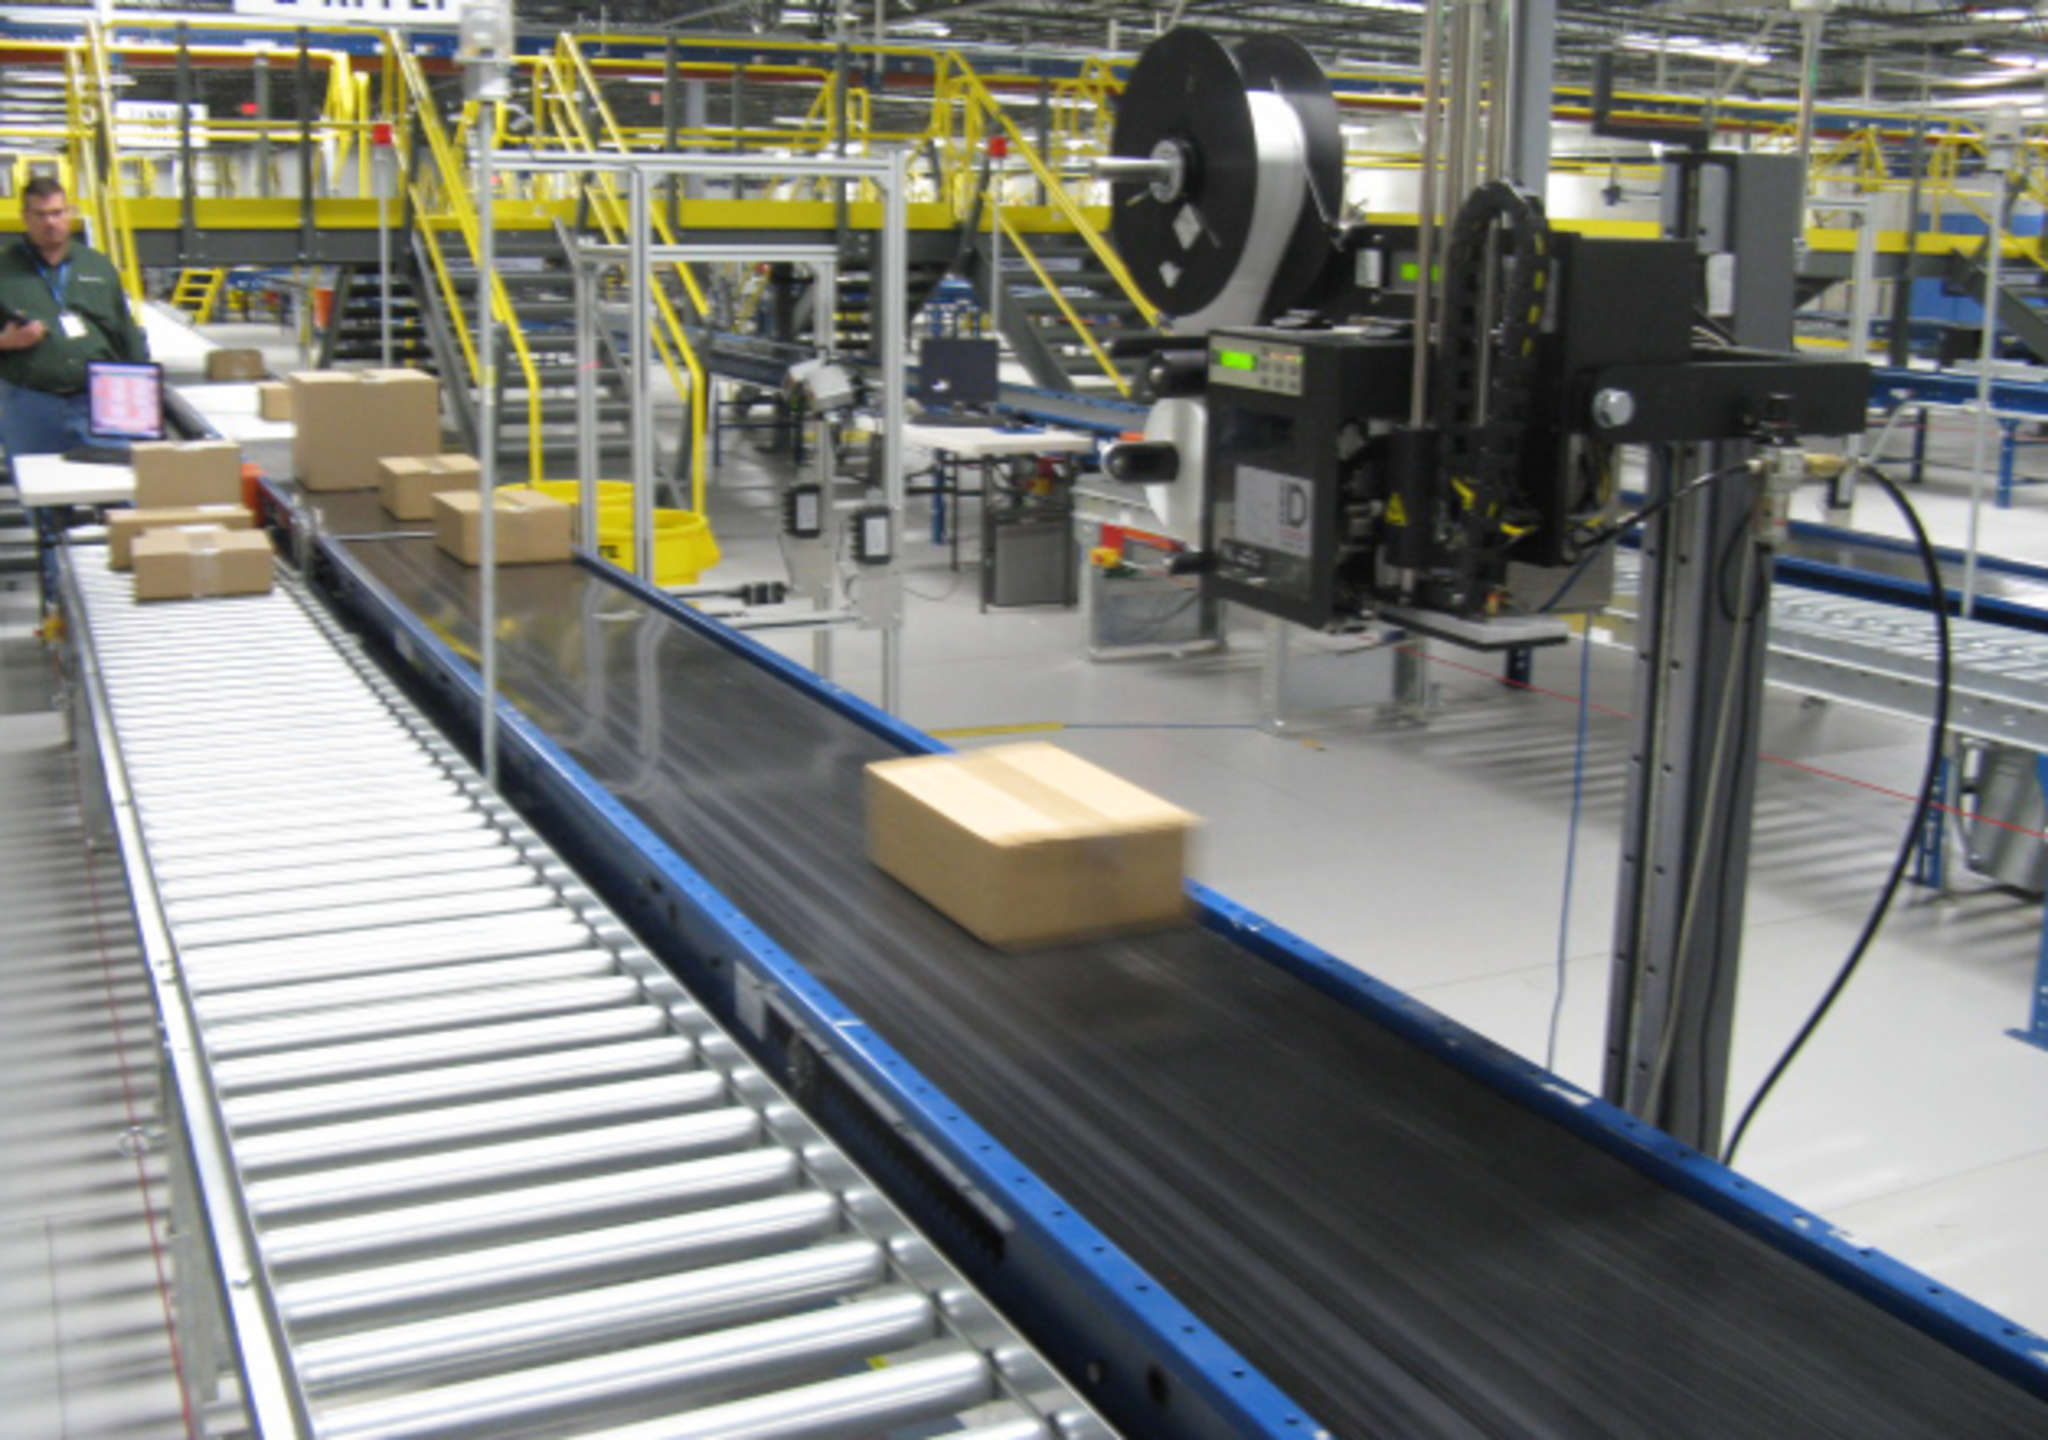 Conveyor belts at a Radial warehouse. The company is on a hiring spree as its clients gear up for Christmas sales, but says low unemployment is making prospective employees hard to come by.